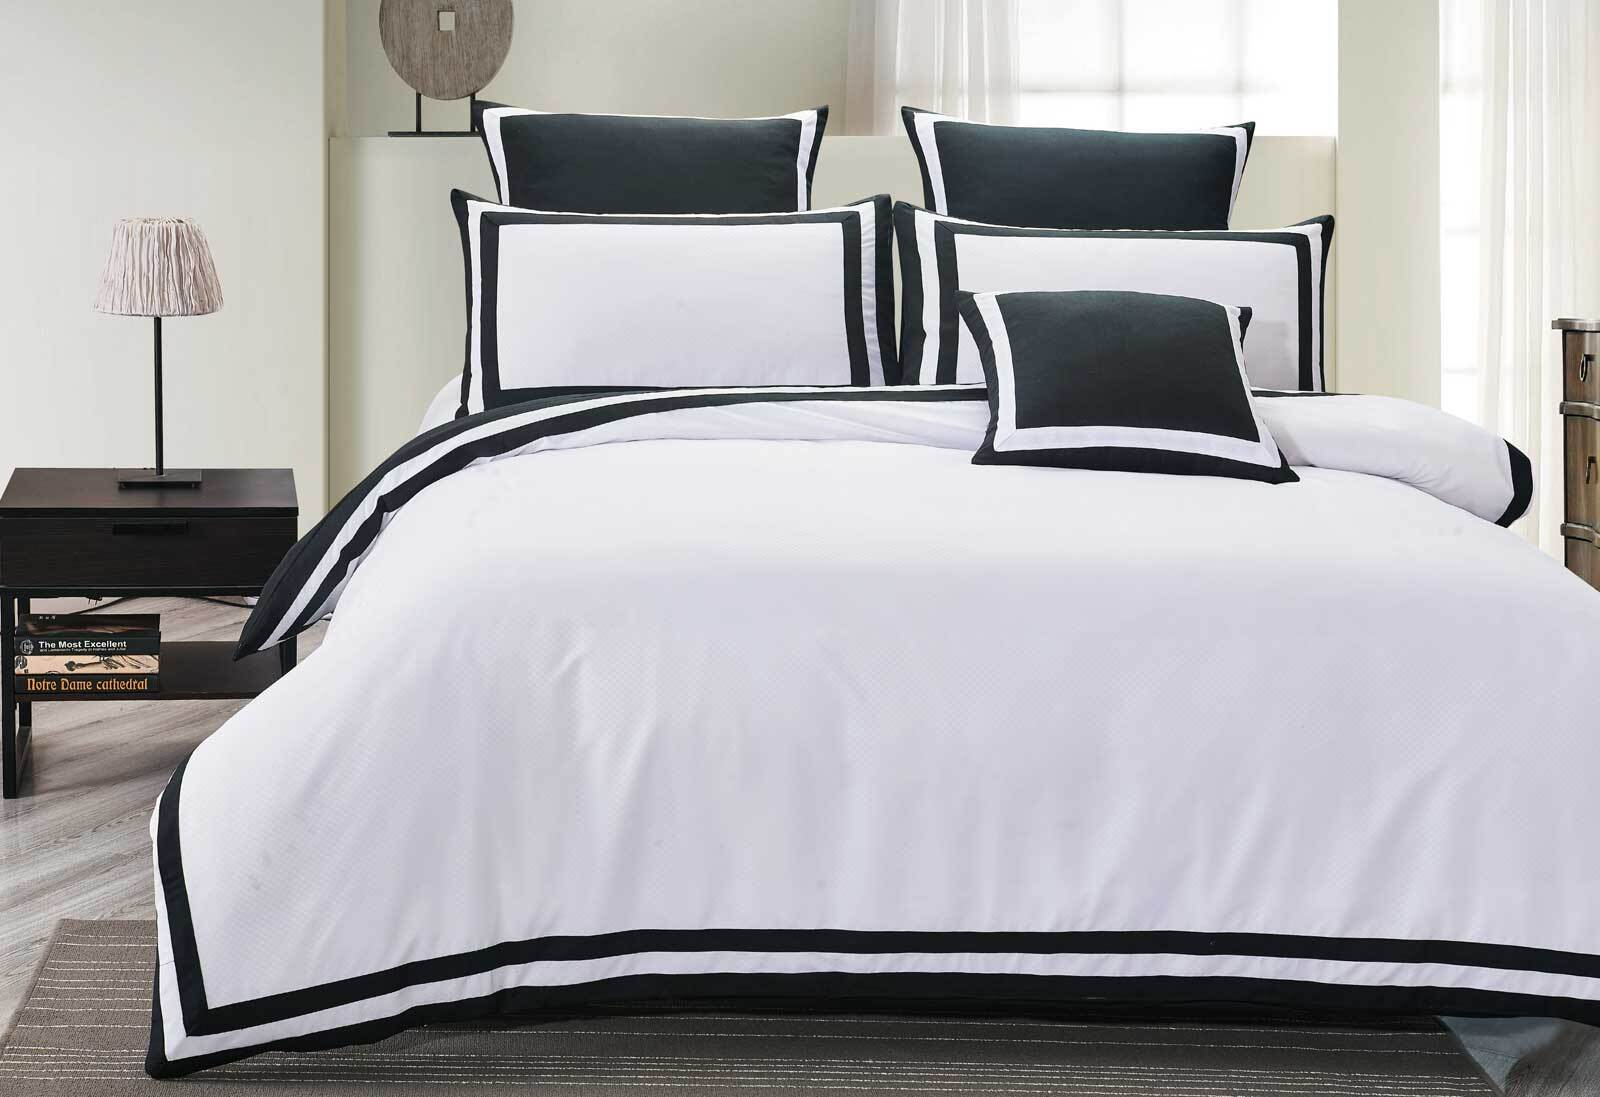 Super King Size Charcoal and White Square Patter Quilt Cover Set (3PCS) 1